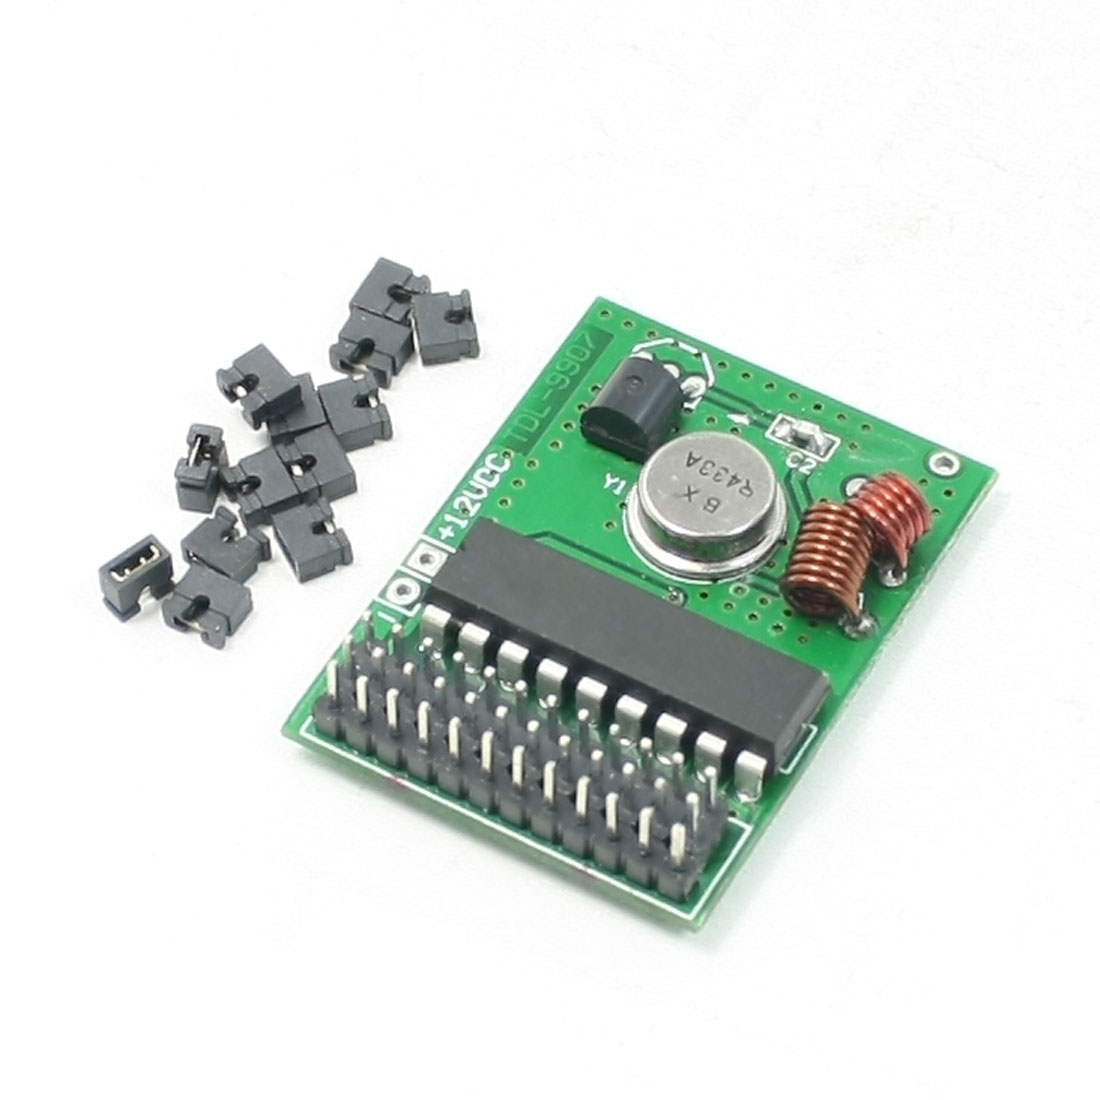 DC 12V ASK/OOK Modulation Mode 433MHz PCB Panel TDL-9907 Transmitter Module